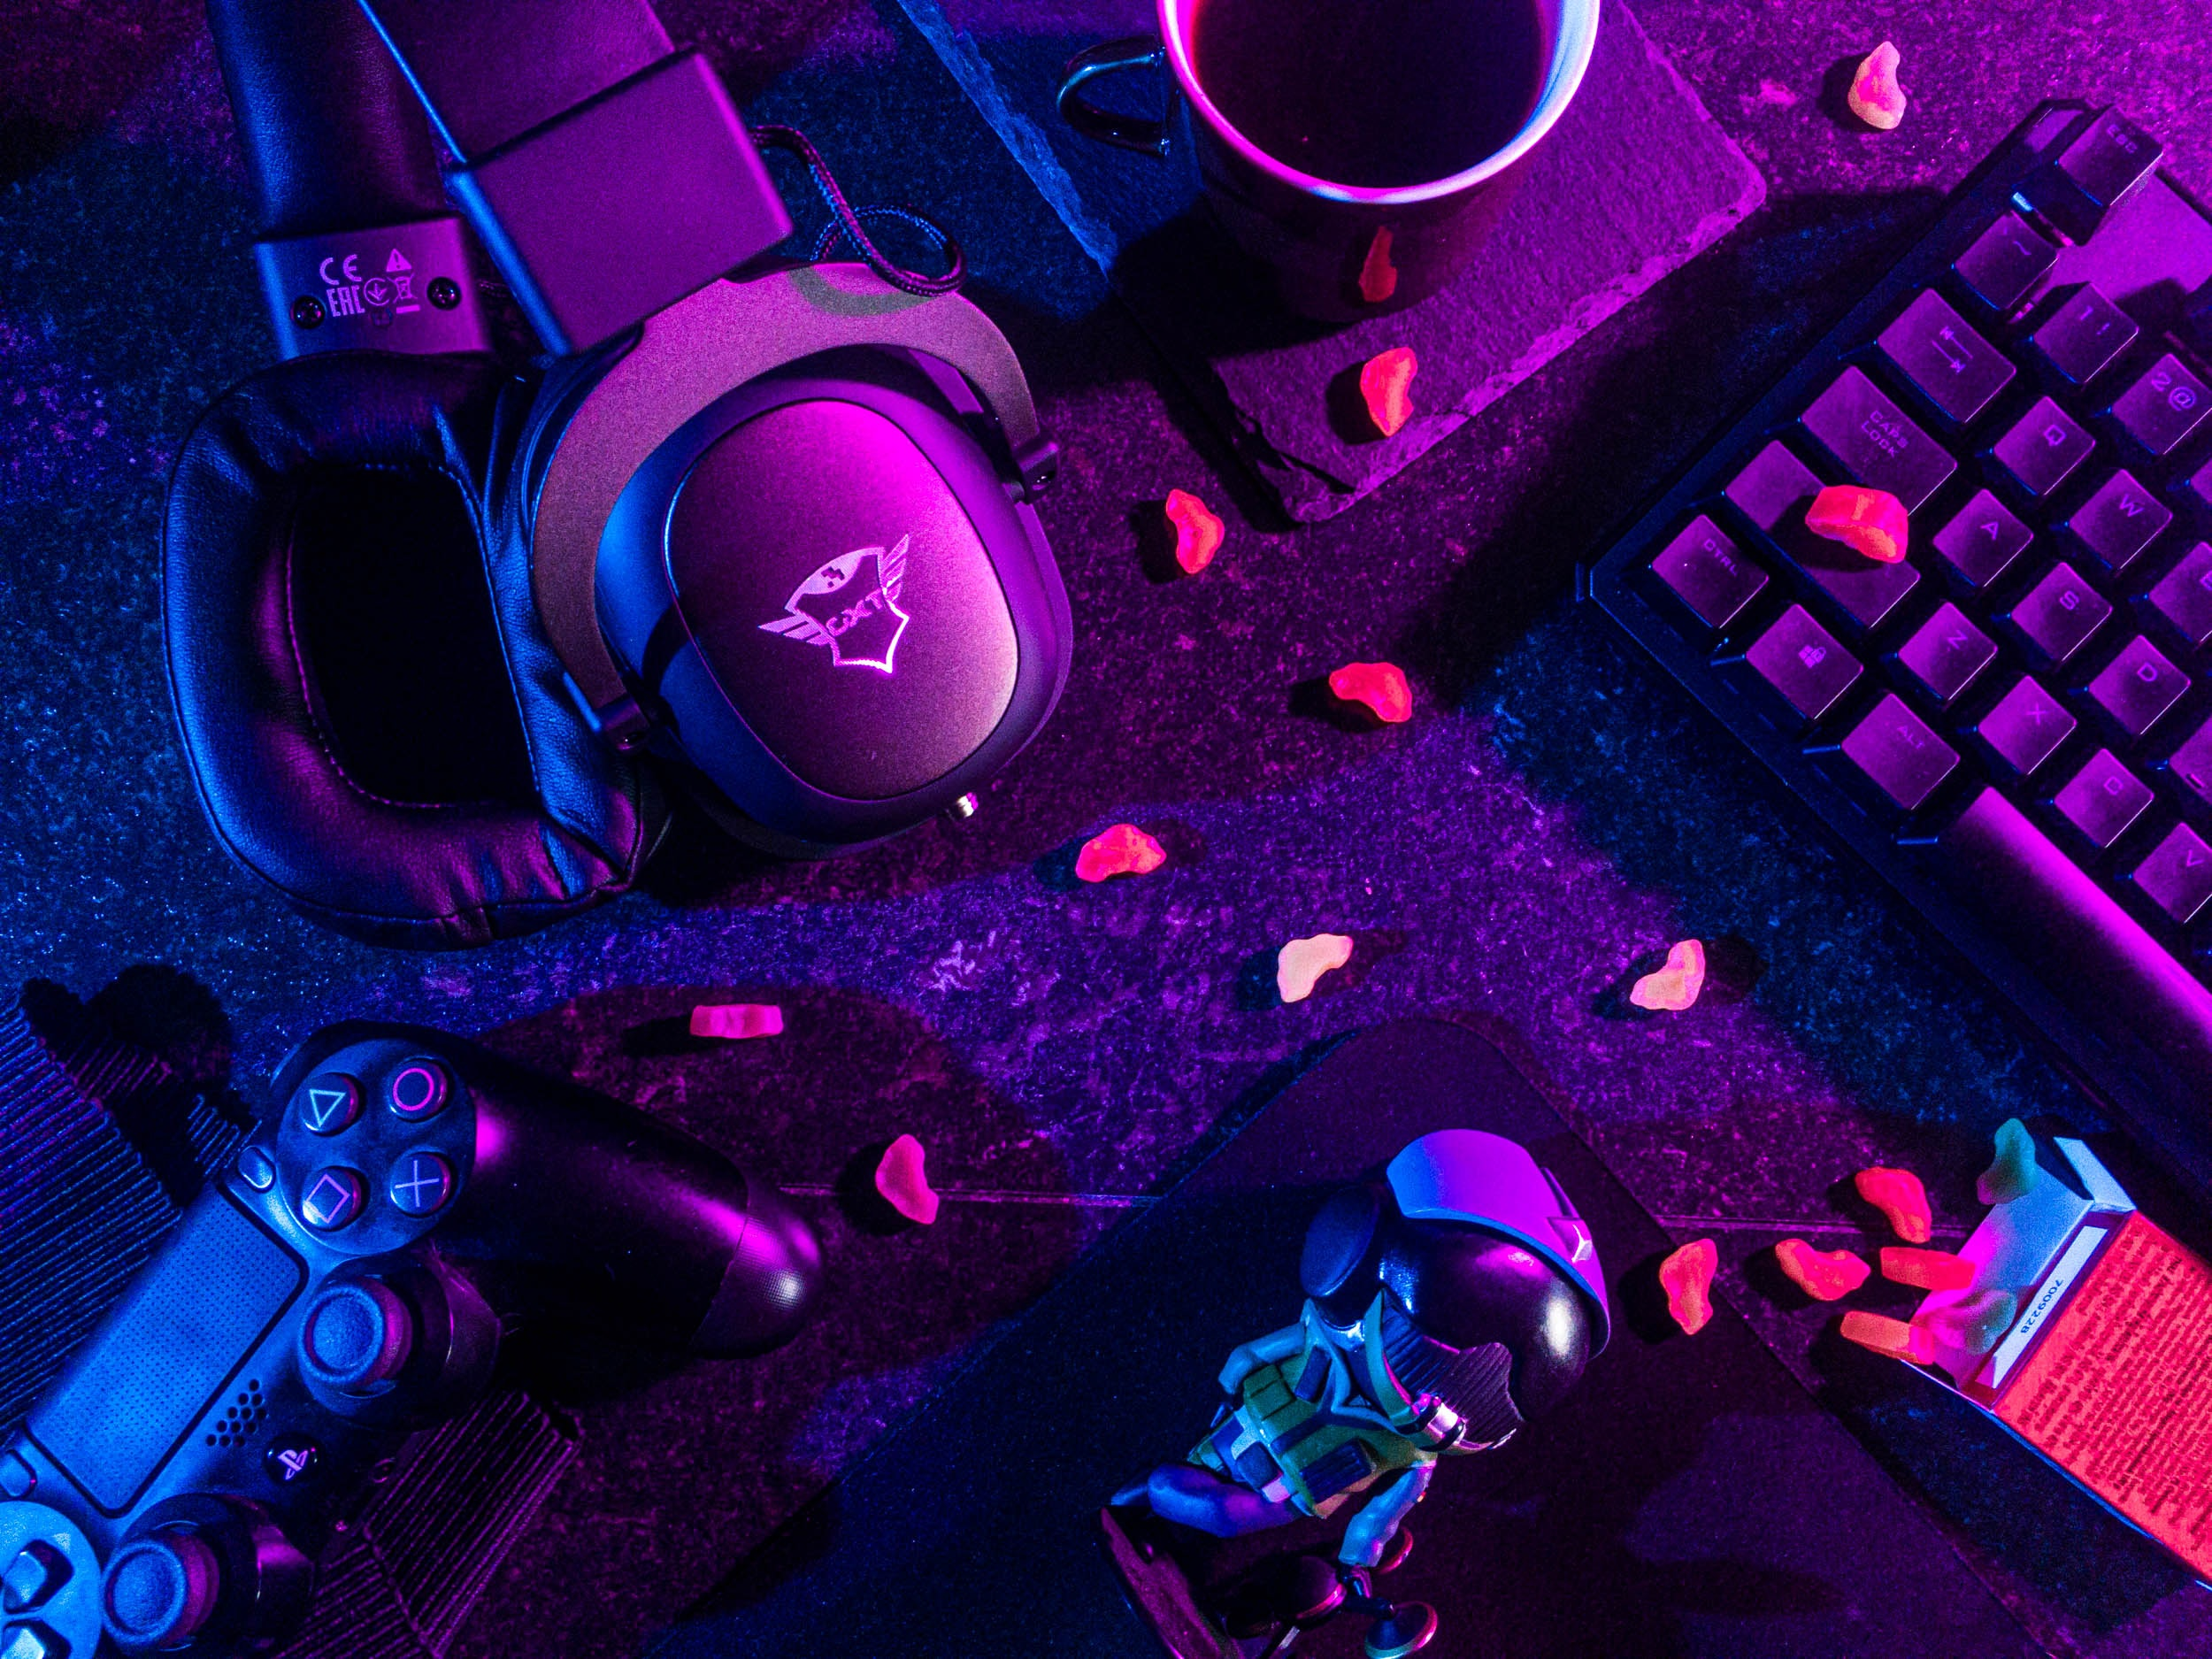 gaming equipment on table